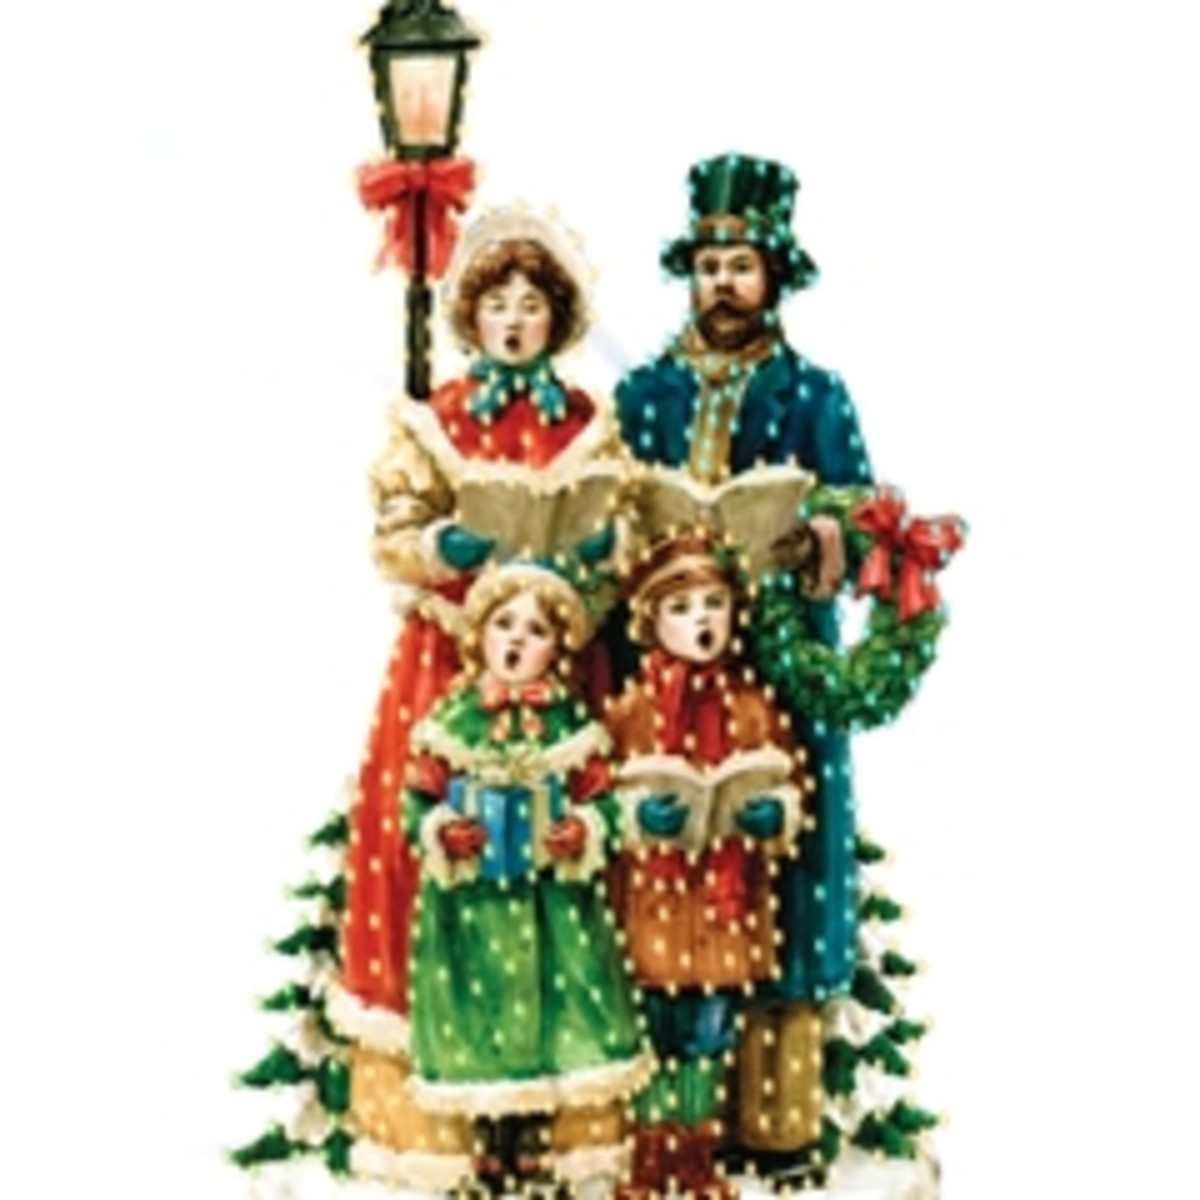 Christmas Carolers Yard Decorations: Christmas Yard Art